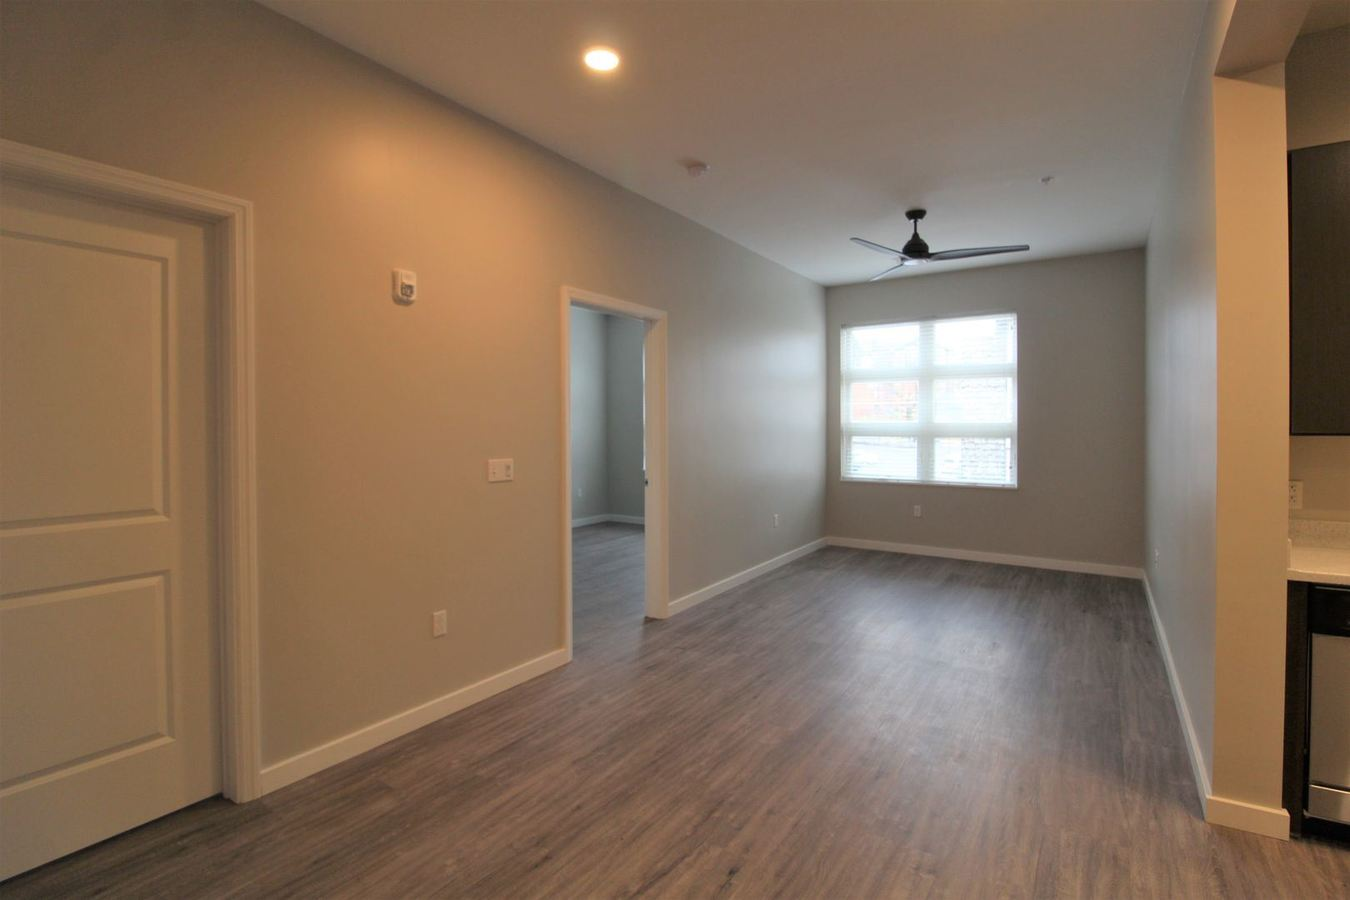 2 Bedrooms 2 Bathrooms Apartment for rent at 461 High Street in Morgantown, WV